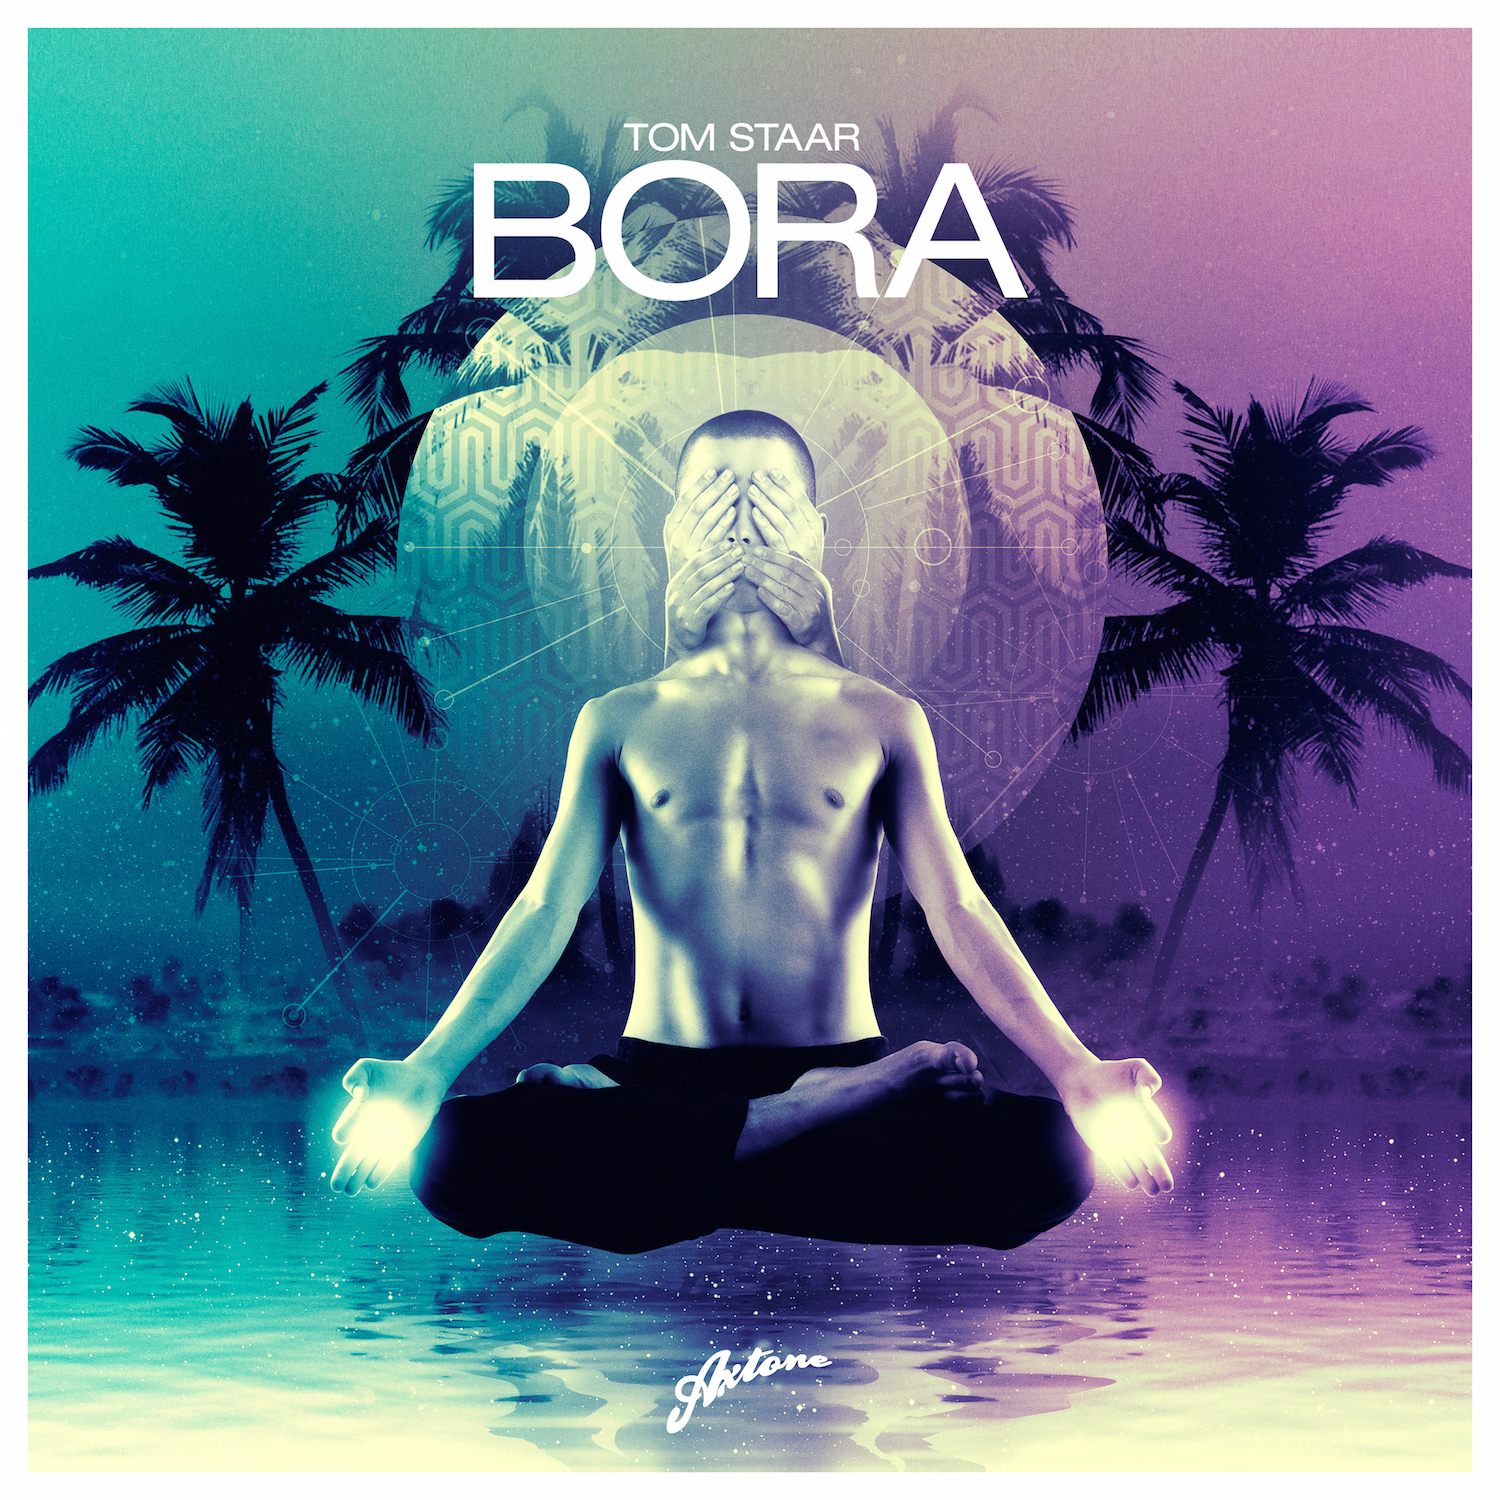 Tom Staar - Bora [March 30 - Axtone Records]